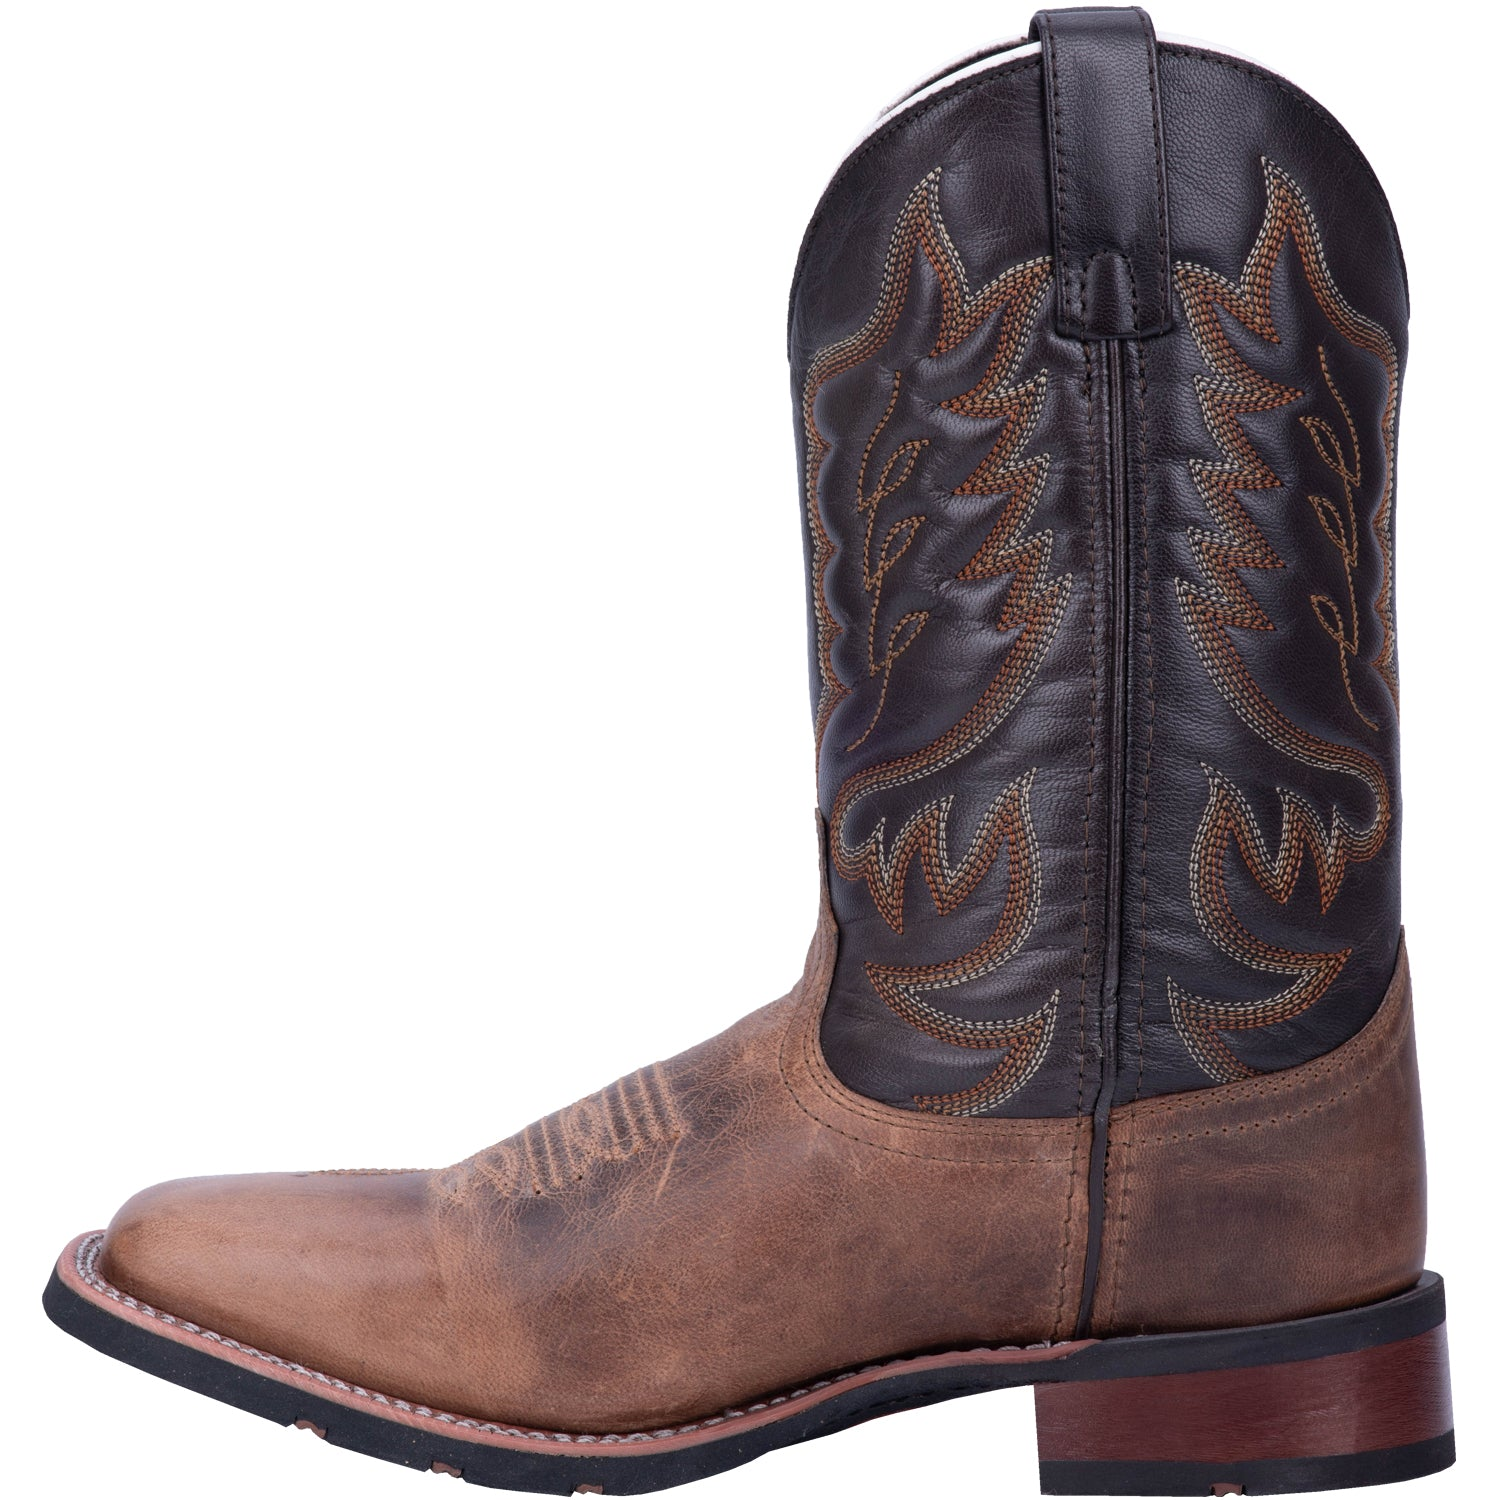 MONTANA LEATHER BOOT 4253953490986